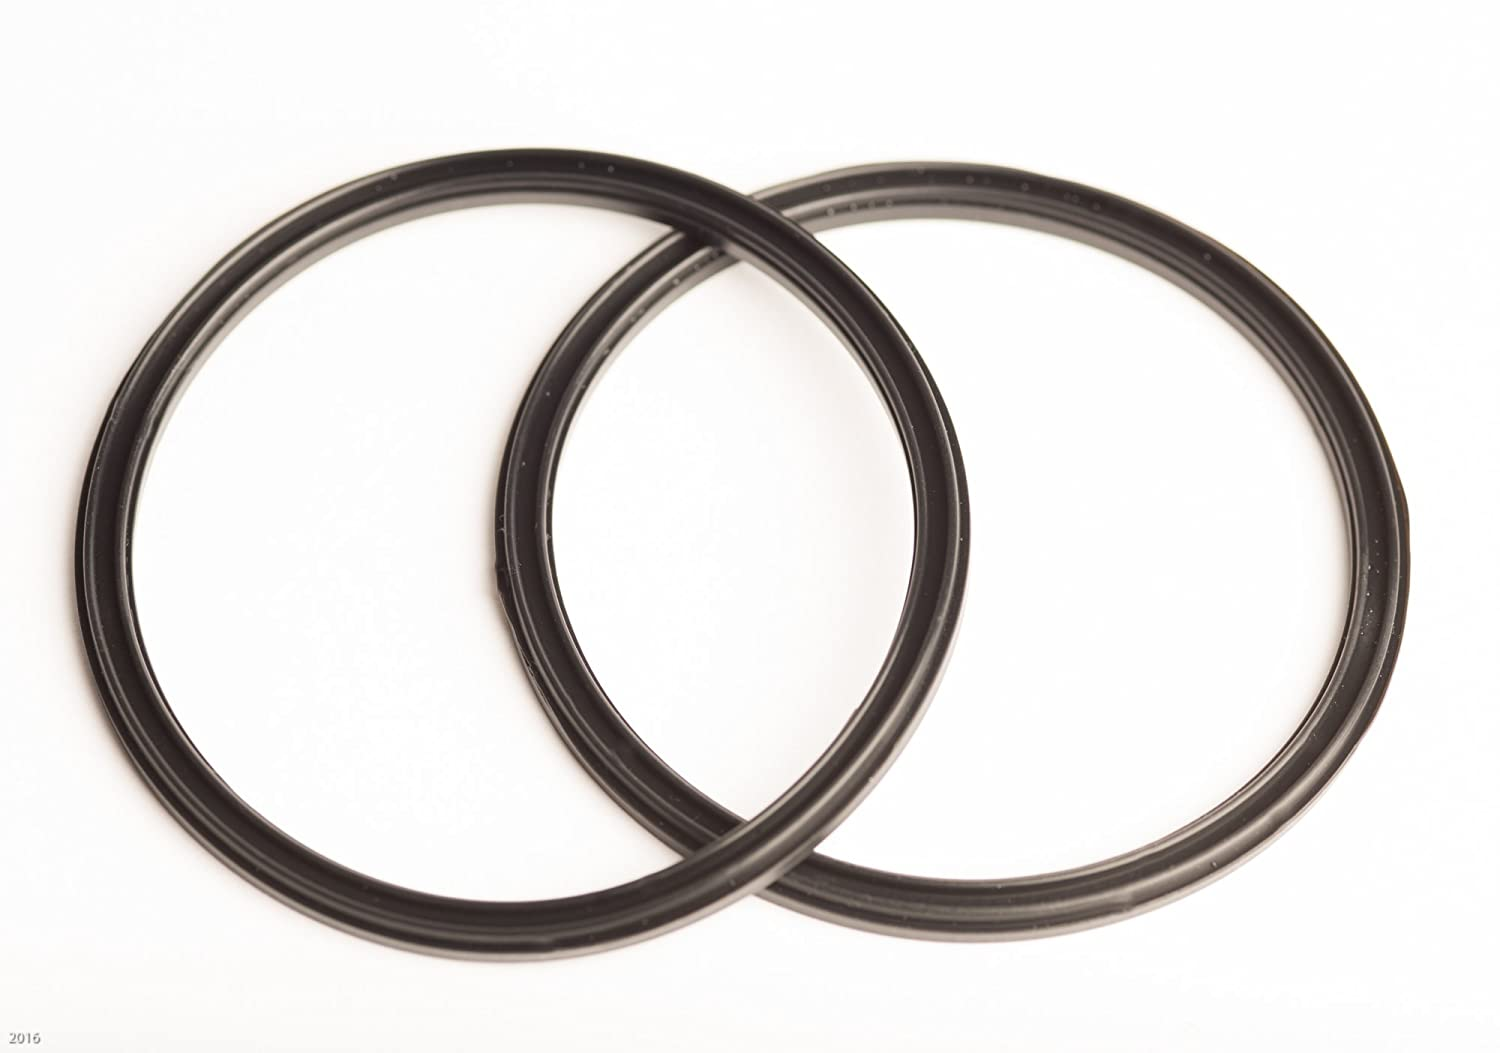 2 Pack New OEM Replacement Rubber Lid Seals for 10, 12, 16, and 20 ounce Insulated Stainless Steel Tumblers Such Yeti RTIC Ozark Trail Mossy Oak Atlin Beast